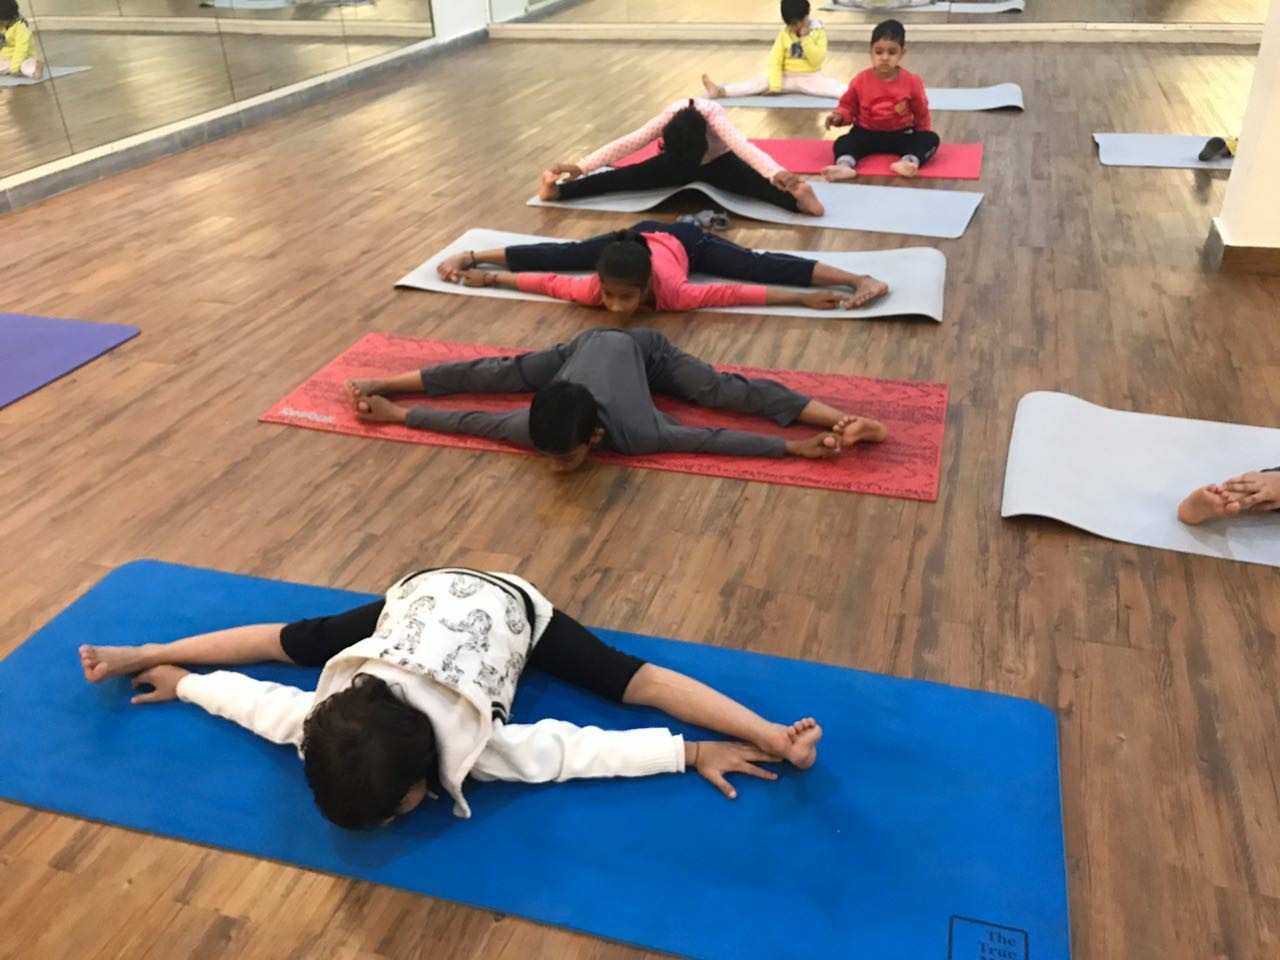 Yoga certification courses in gurgaon aumyogashala classes yoga certification courses in gurgaon aumyogashala classes workshops cleveland scene 1betcityfo Images